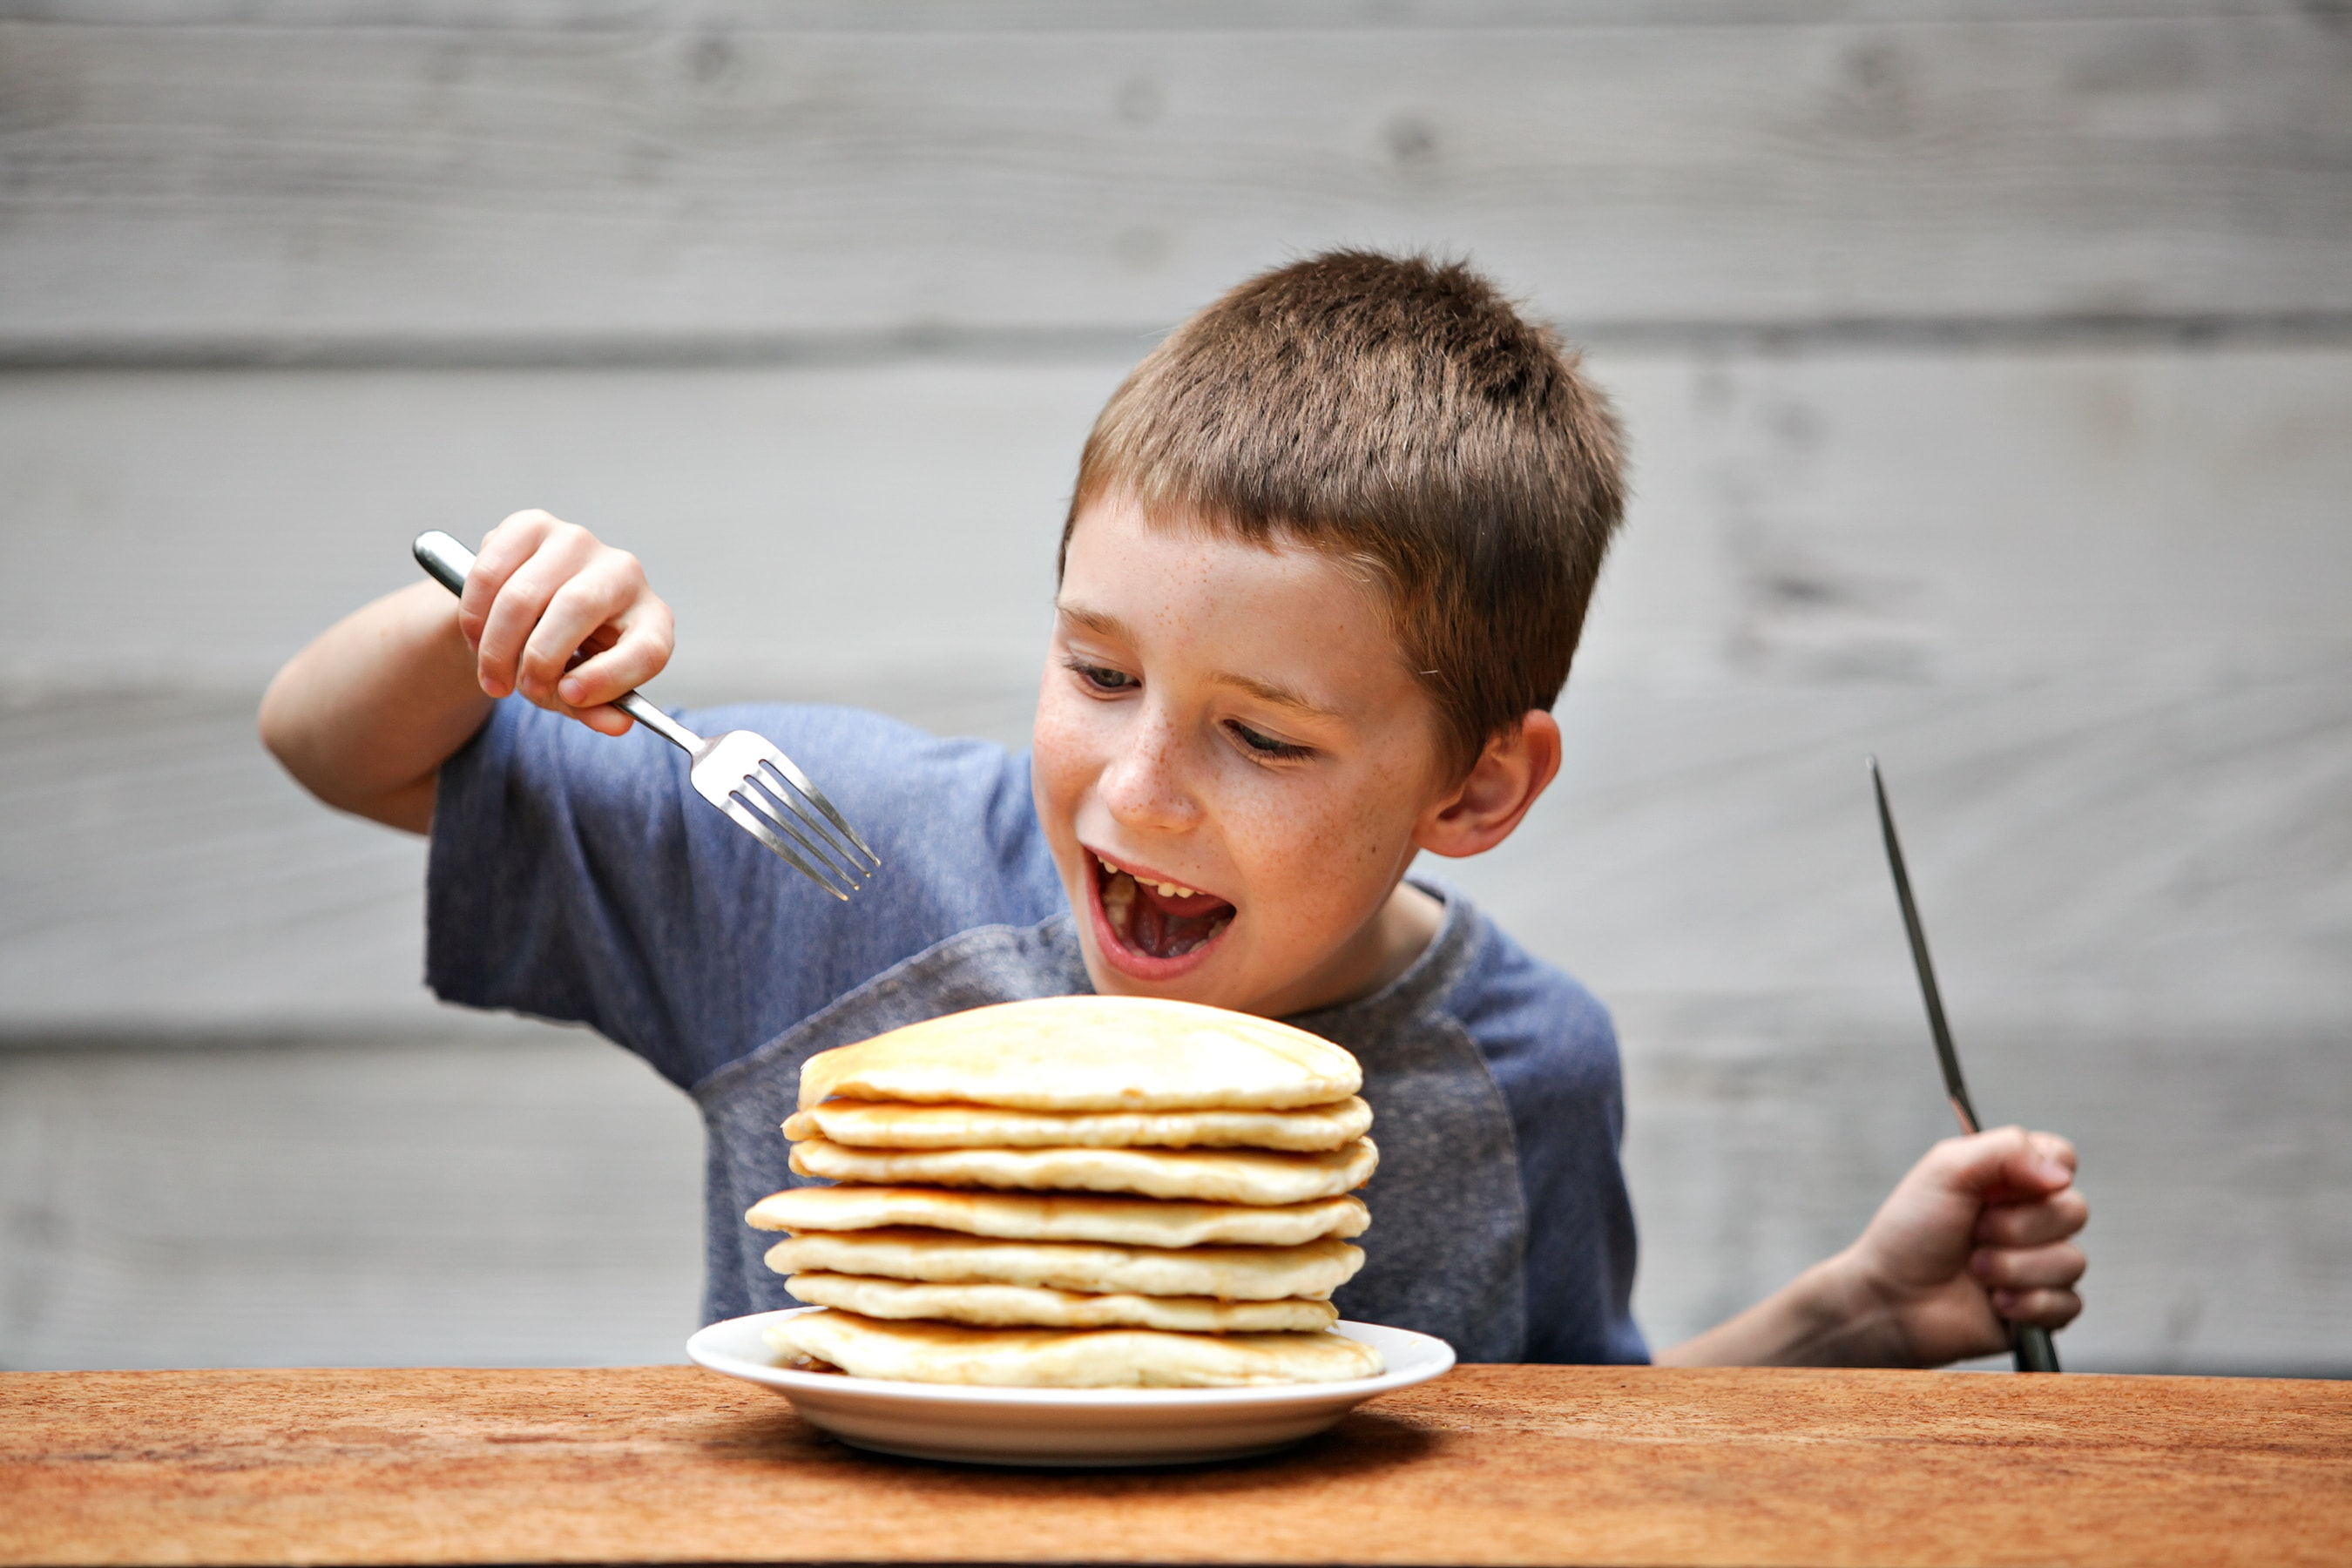 young boy smiling and about to eat a stack of pancakes